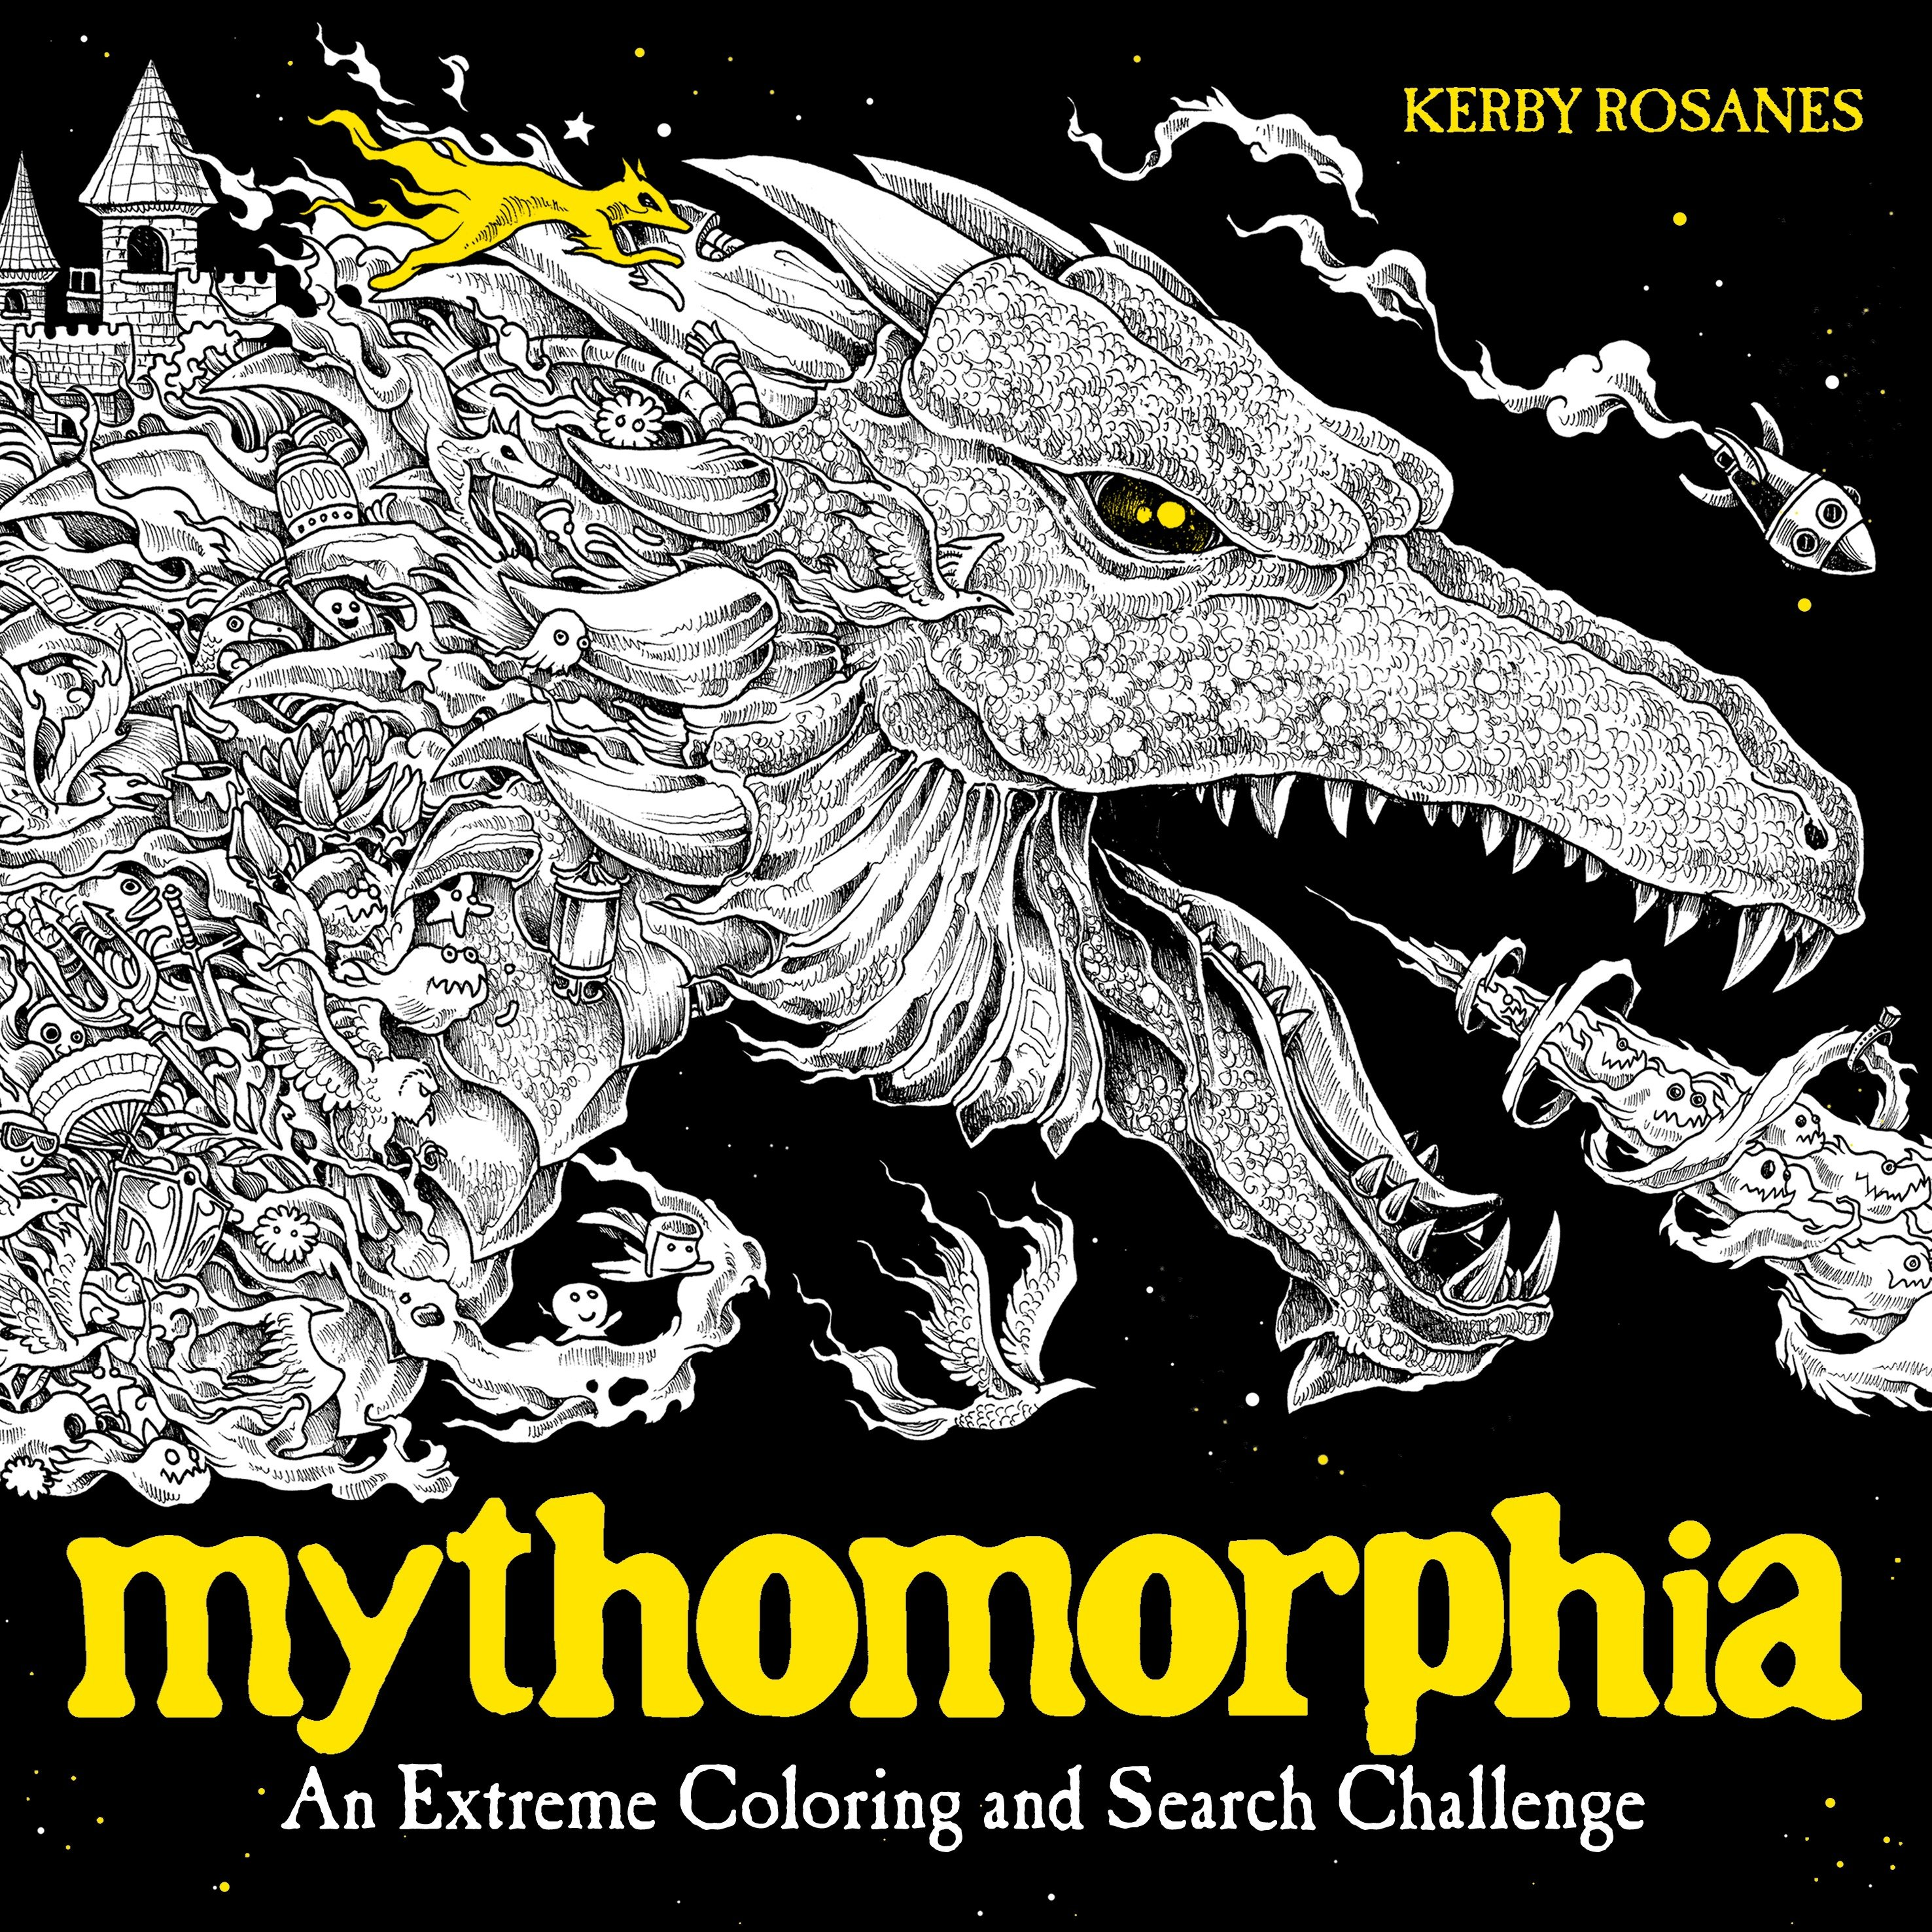 Mythomorphia an extreme coloring and search challenge